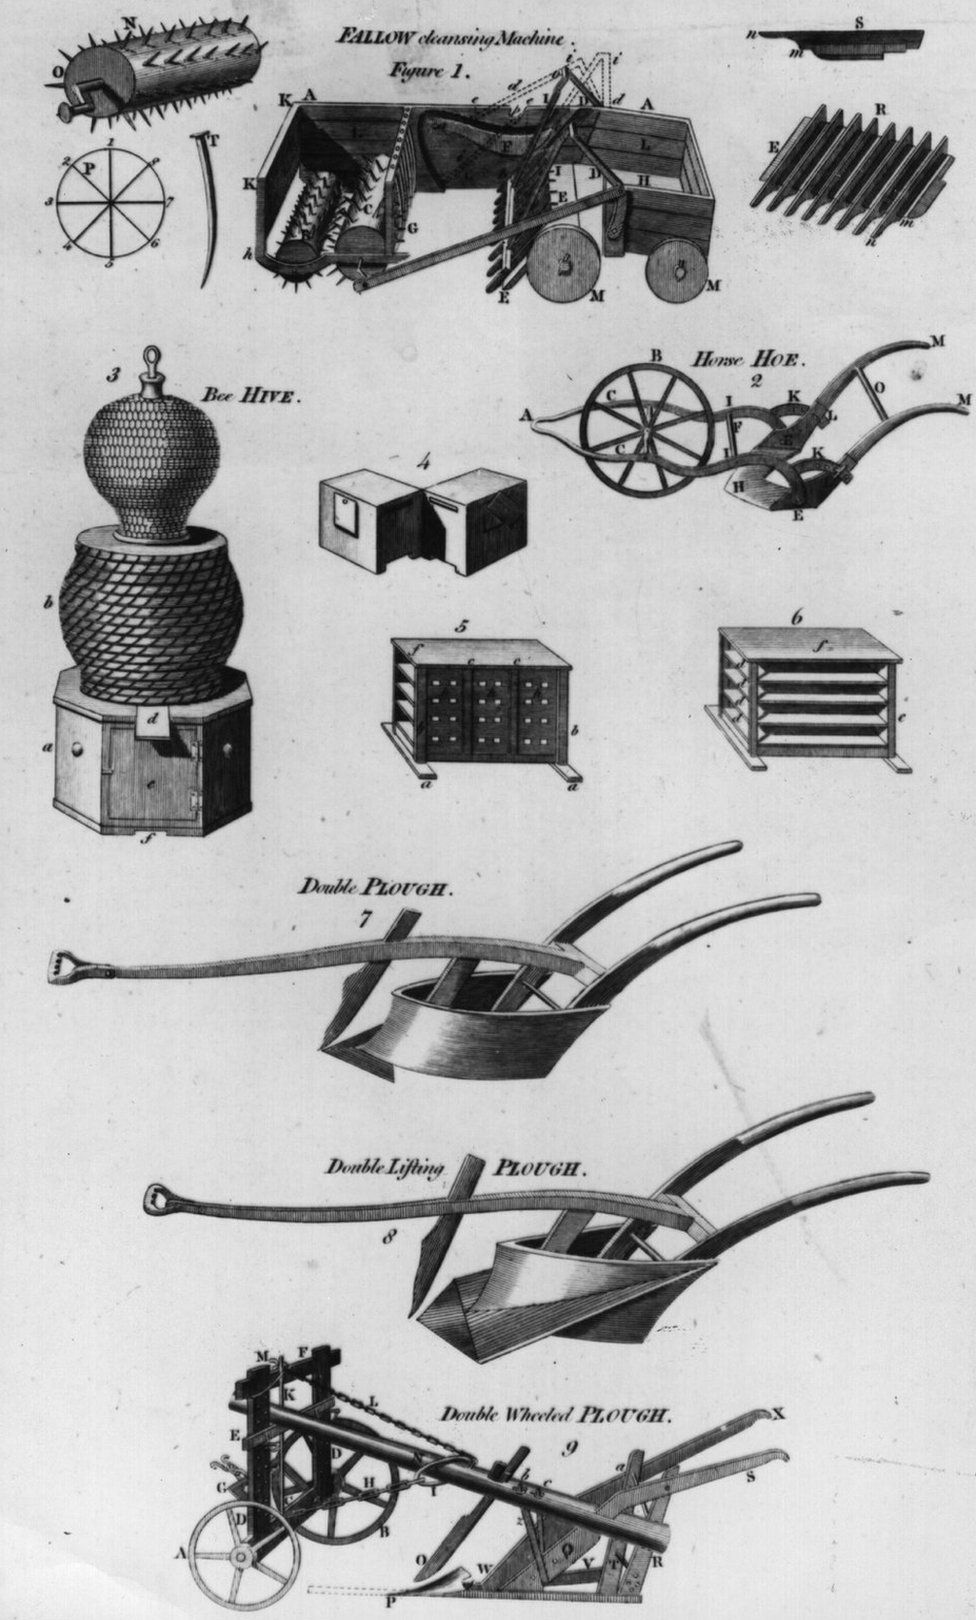 Technical drawing of machinery and equipment used in agriculture and husbandry, circa 1830